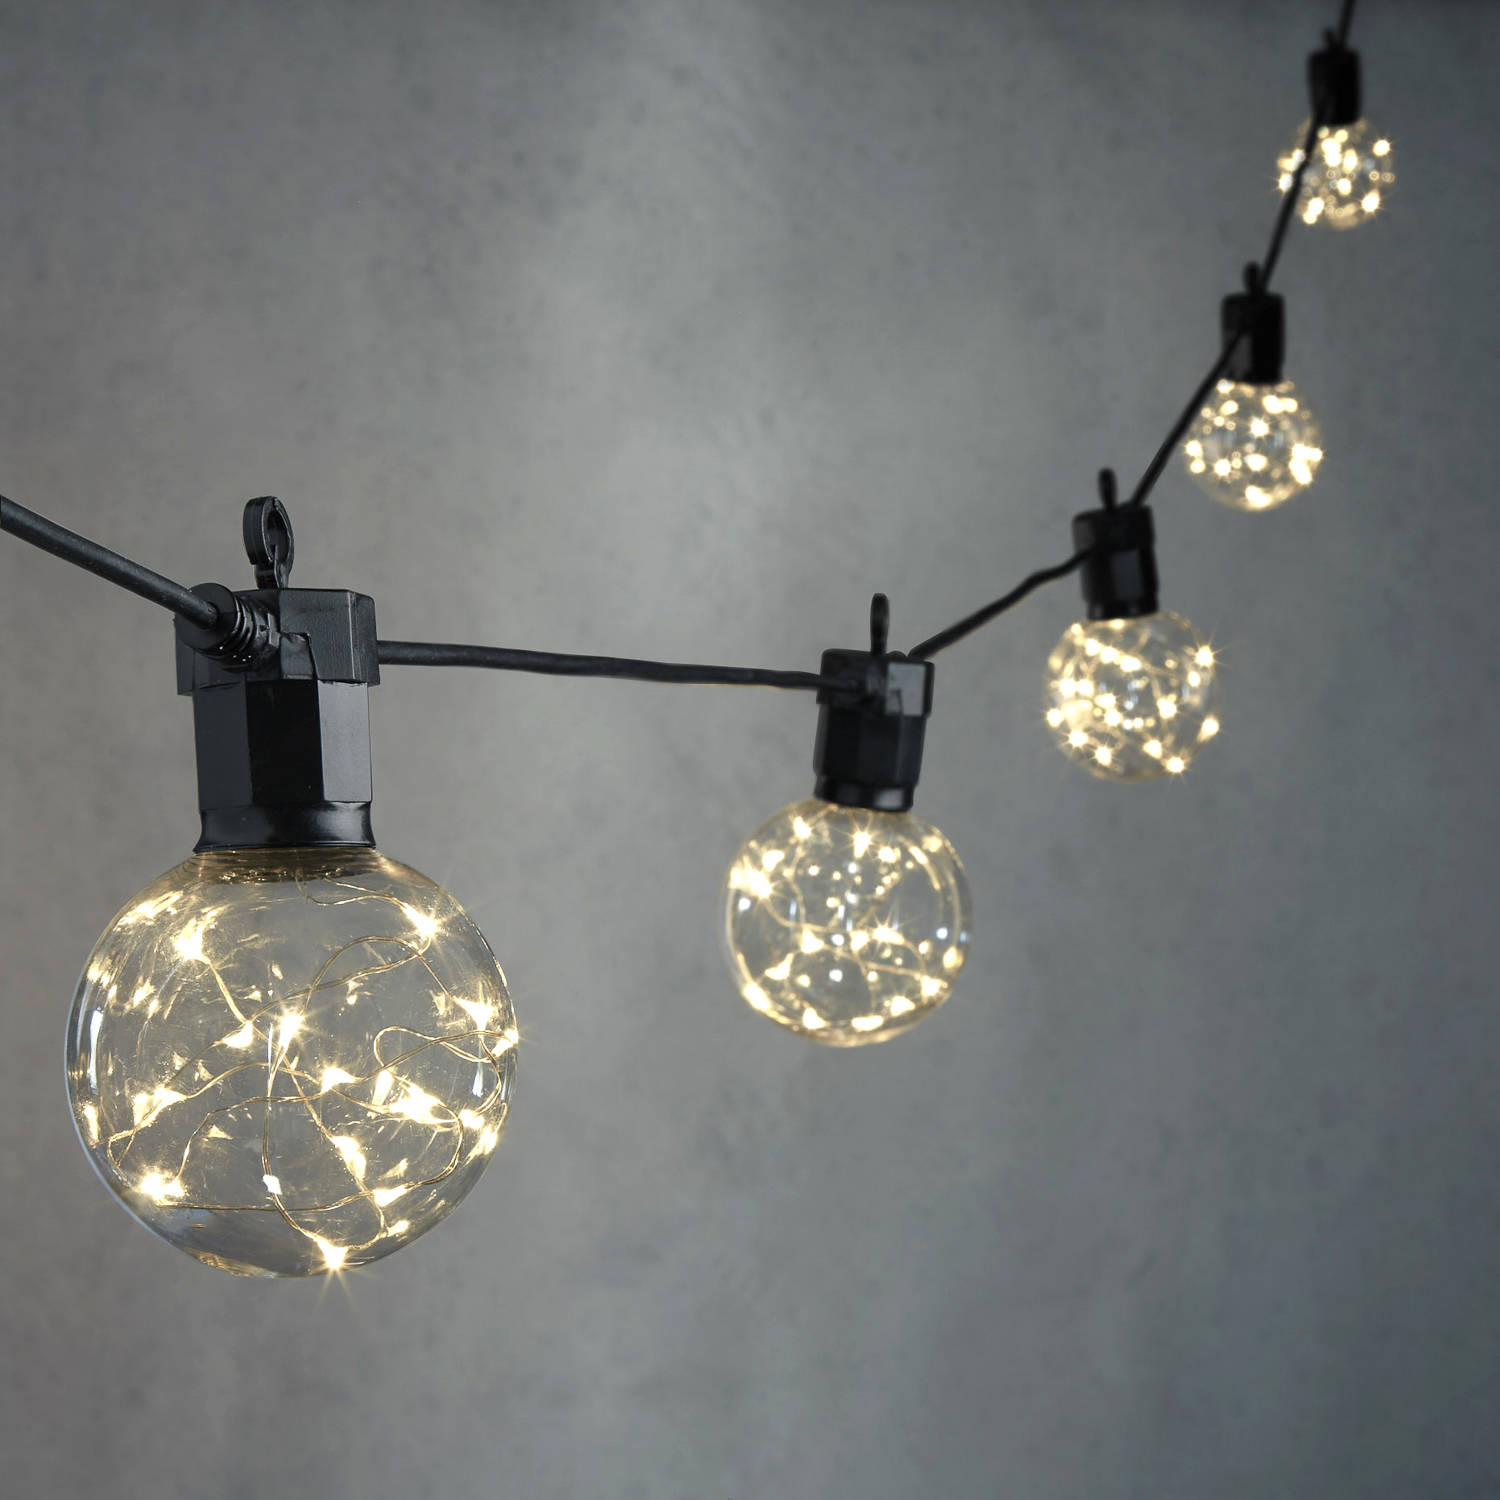 Half String Led Lights Out : Lights.com String Lights Decorative String Lights Celestial Globe String Lights with ...